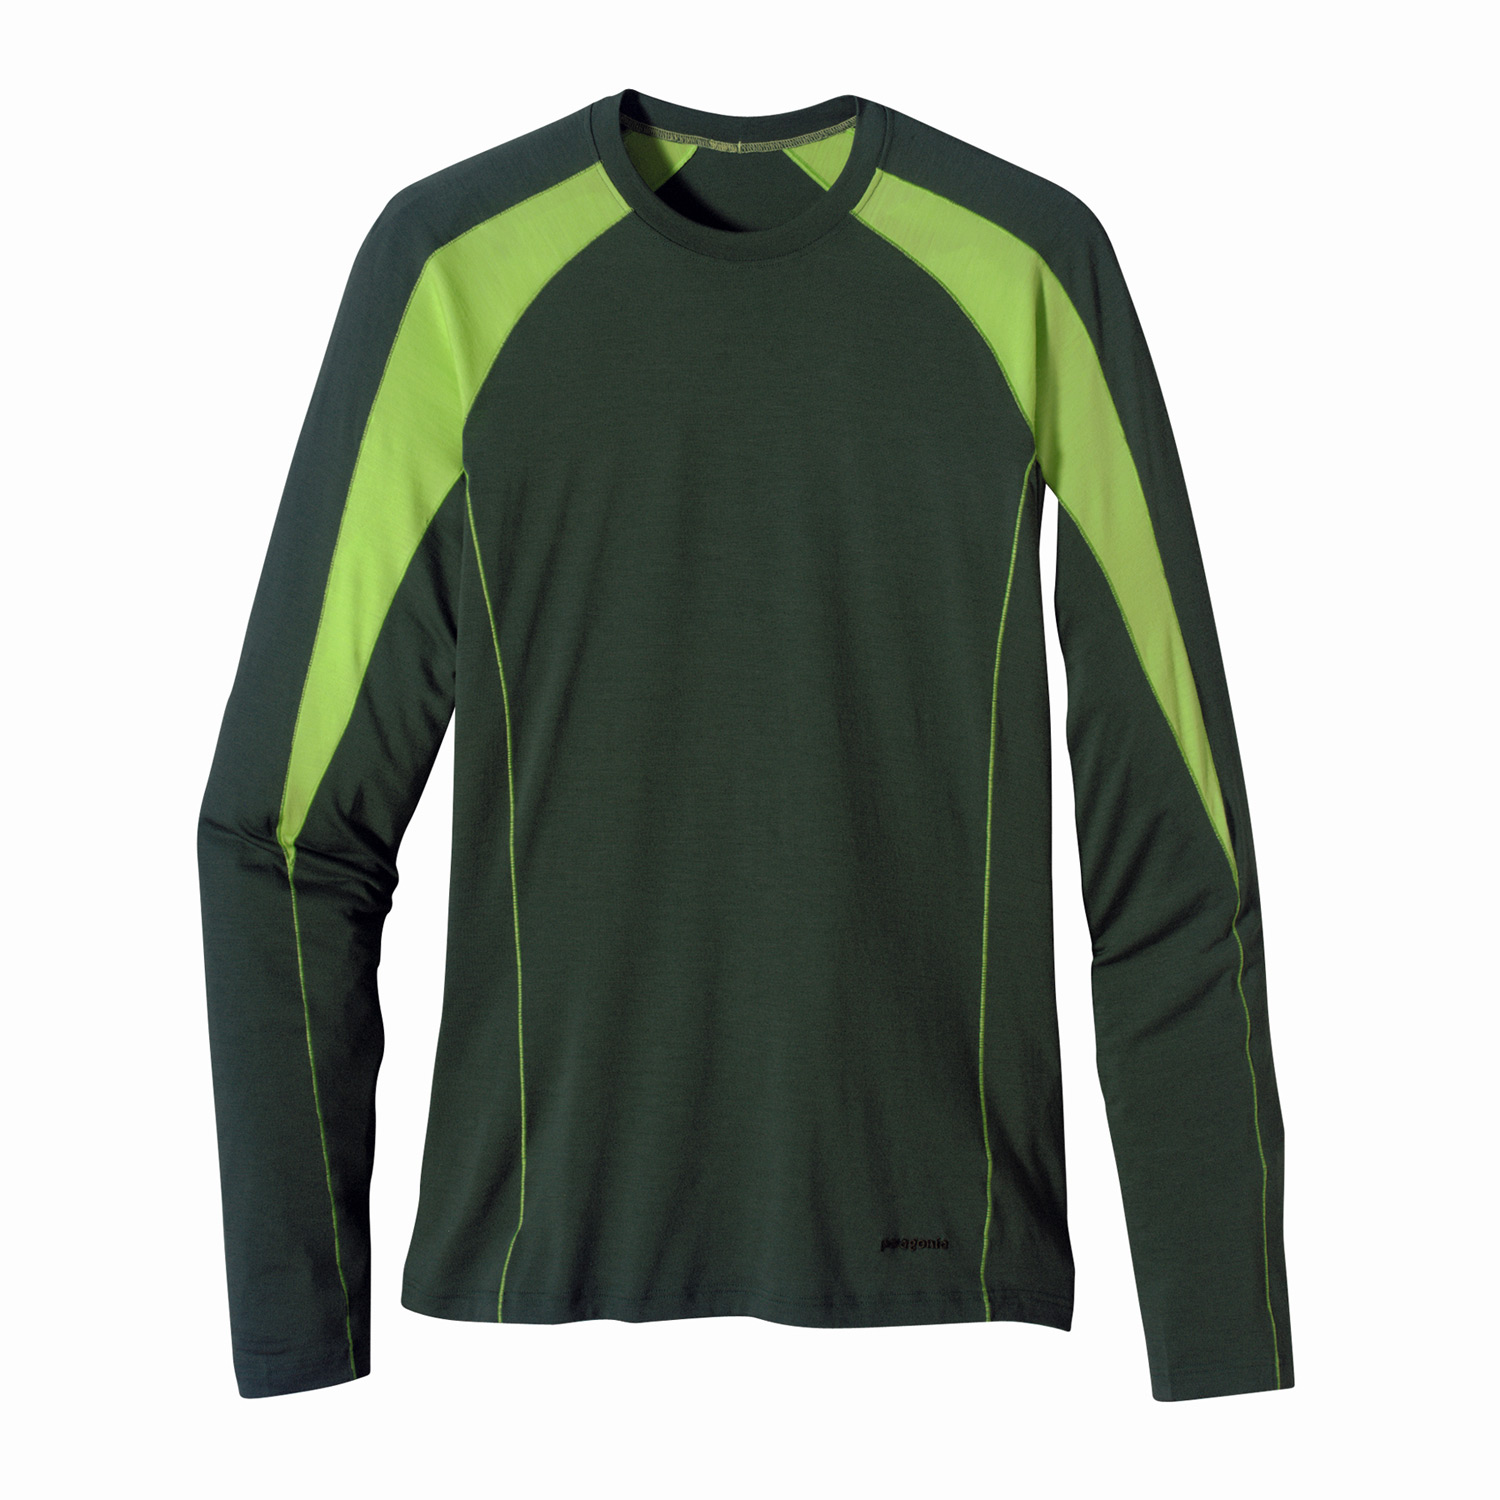 Patagonia's Merino 2 polyester blend keeps you dry and comfortable in cool to cold conditionsKey Features of the Patagonia Merino 2 LW Crew Base Layer Top: Merino wool/polyester blend keeps you dry and comfortable even when wet, is stronger and more durable than 100% wool, has a softer hand, naturally controls odor, and wicks perspiration 18.9 micron-gauge yarn and jersey-knit construction Self-fabric collar band for comfort Raglan sleeve seams won't chafe beneath pack straps Side seams offset to eliminate irritation Slow-washed without chlorine to prevent shrinkage, bluesign approved Machine-wash cold, tumble dry at low temperature Slim fit (4.7 oz) 190 g fabric: 4.87-oz 80% chlorine-free merino wool/20% polyester (100% recycled) - $49.95